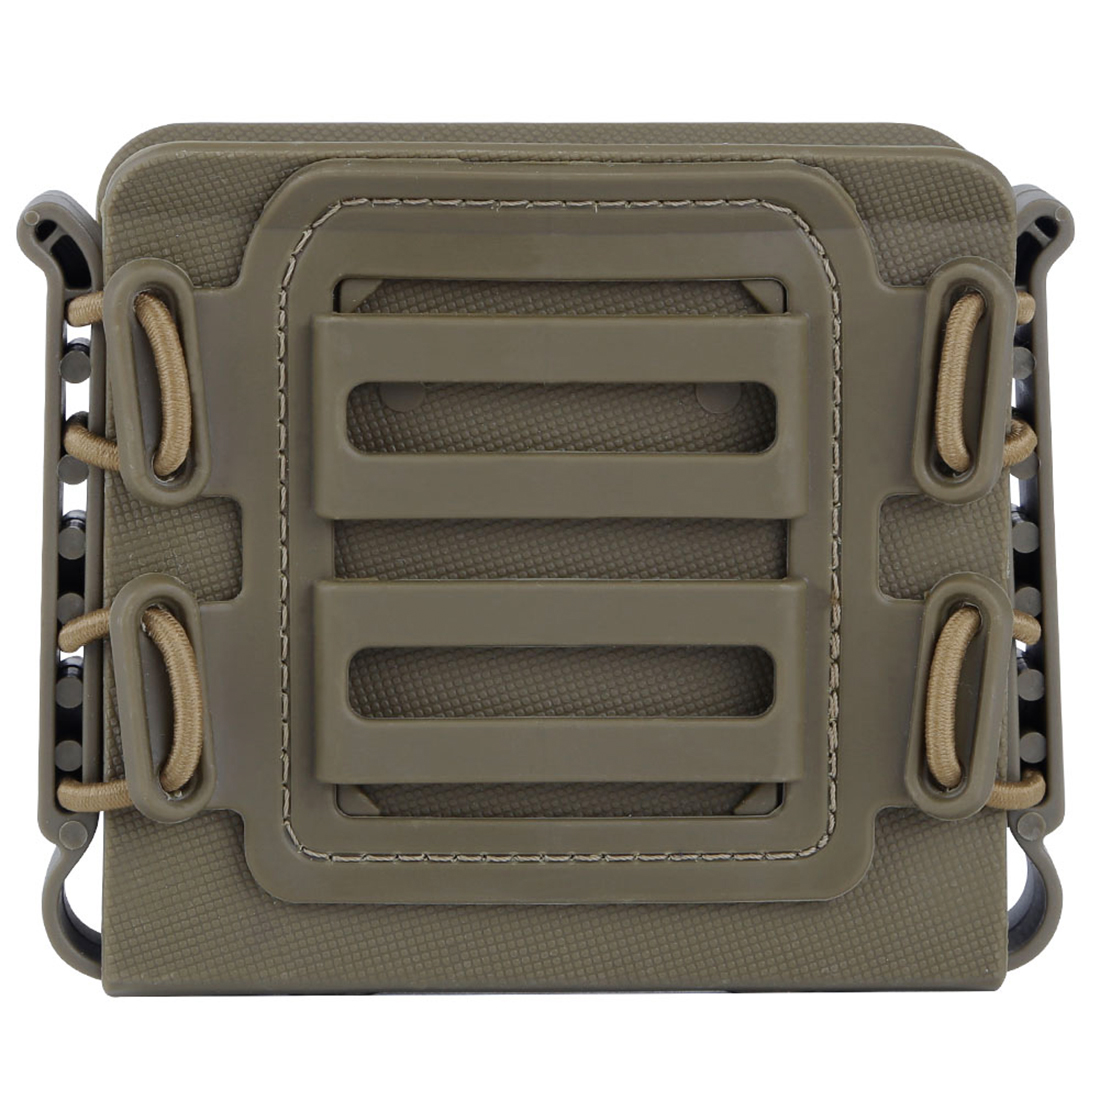 US $7 92 28% OFF|MODIKER Outdoor Kids Scorpion Type Tactical Magazine Pouch  Storage Box for Sniper Rifle Toy for AWM M24 Magazine Grey-in Toy Guns